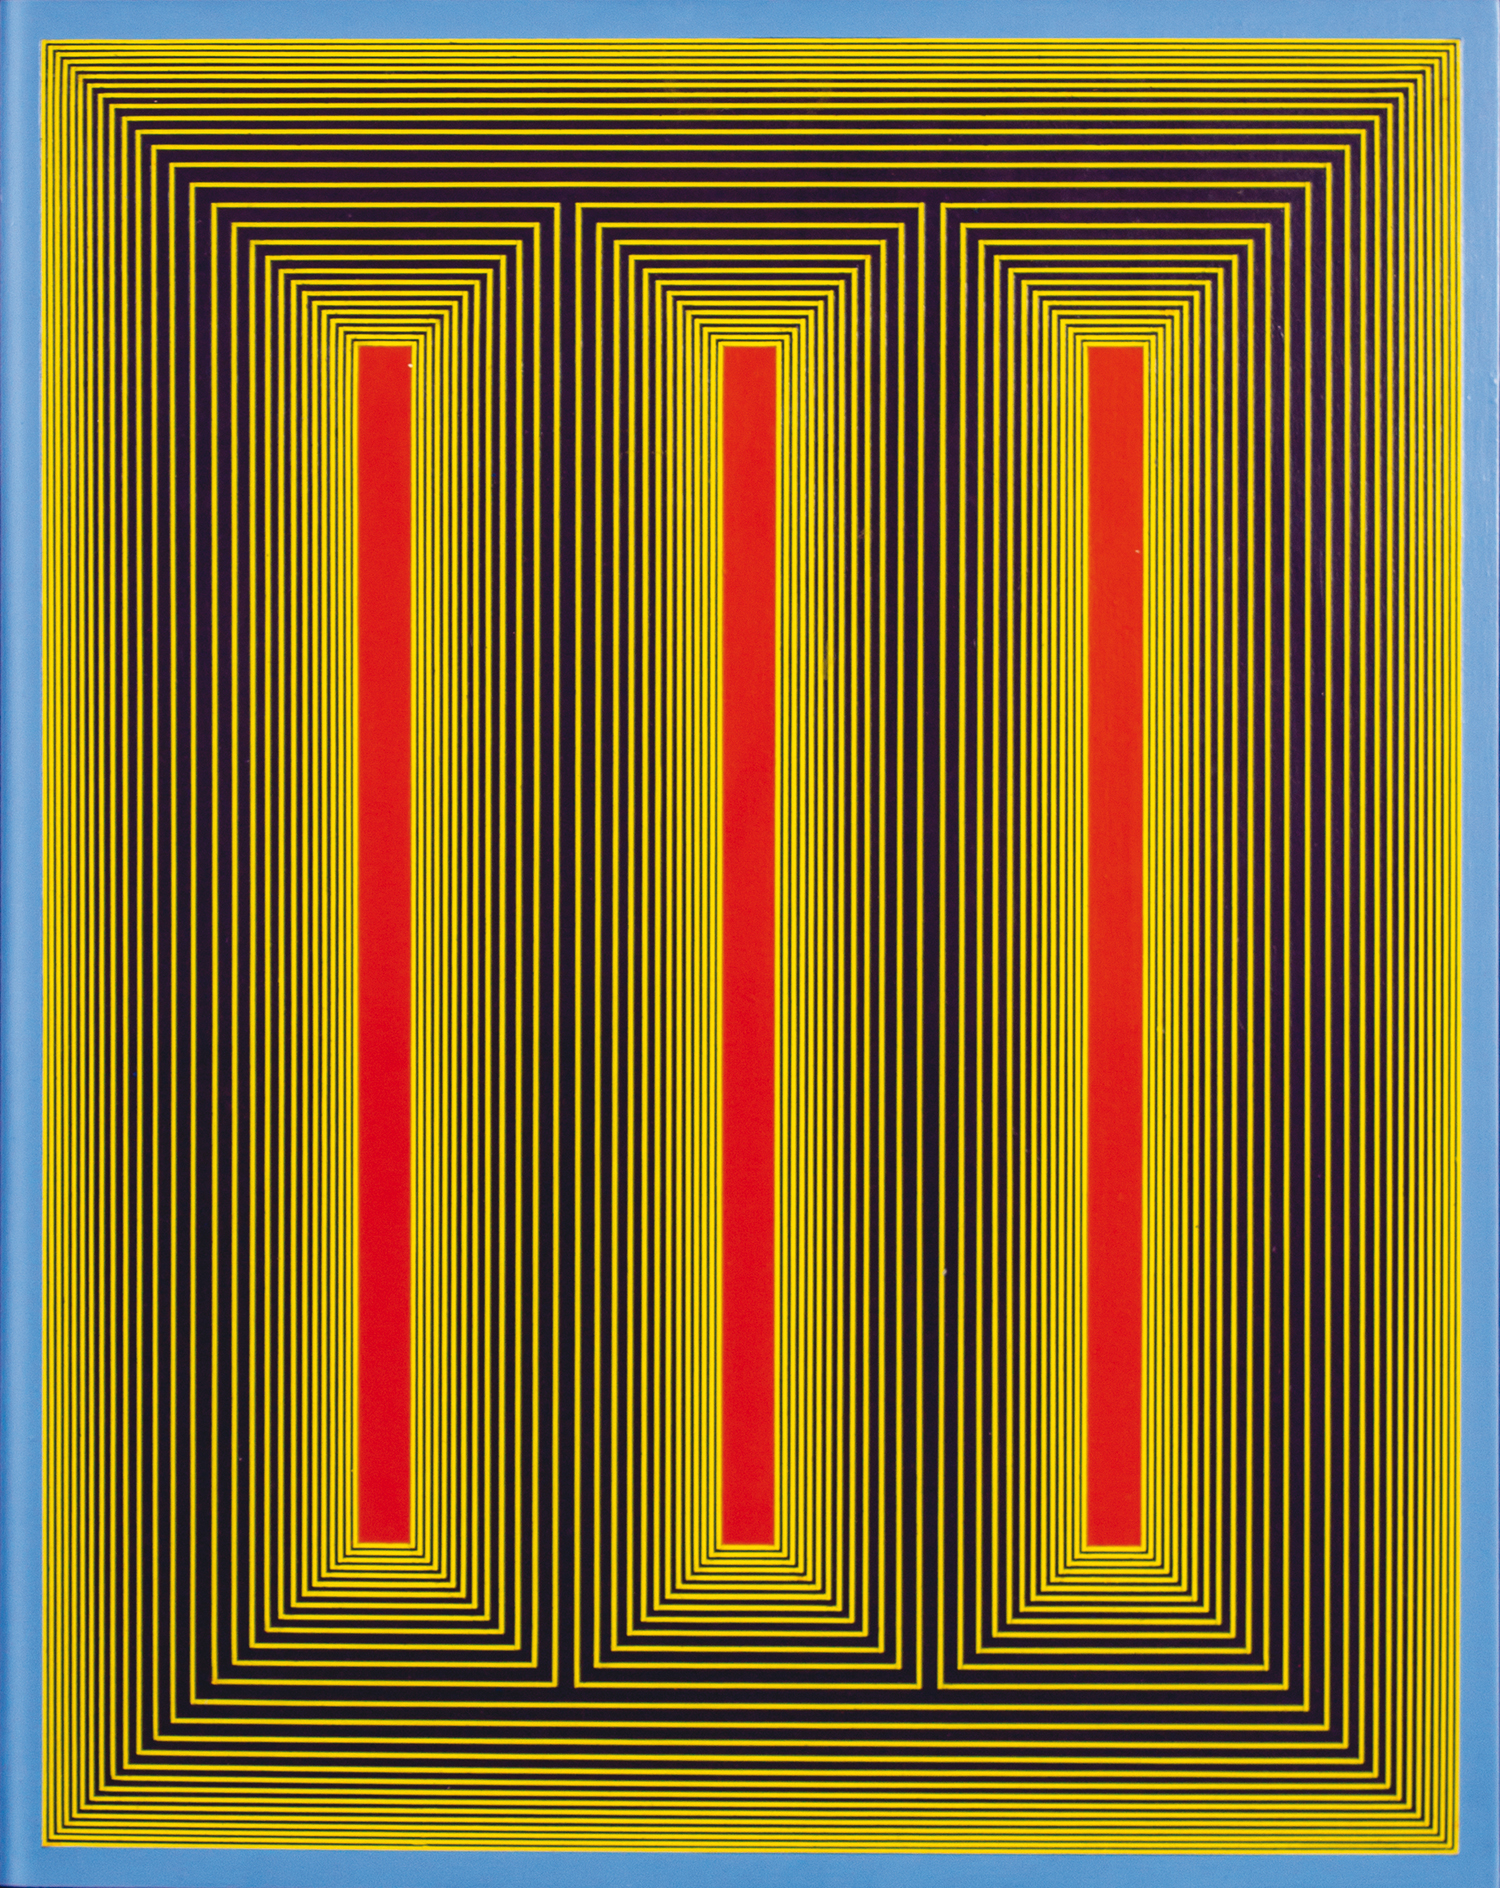 20_Richard Anuszkiewicz 1983 66x51 Temple or red, yellow and blue